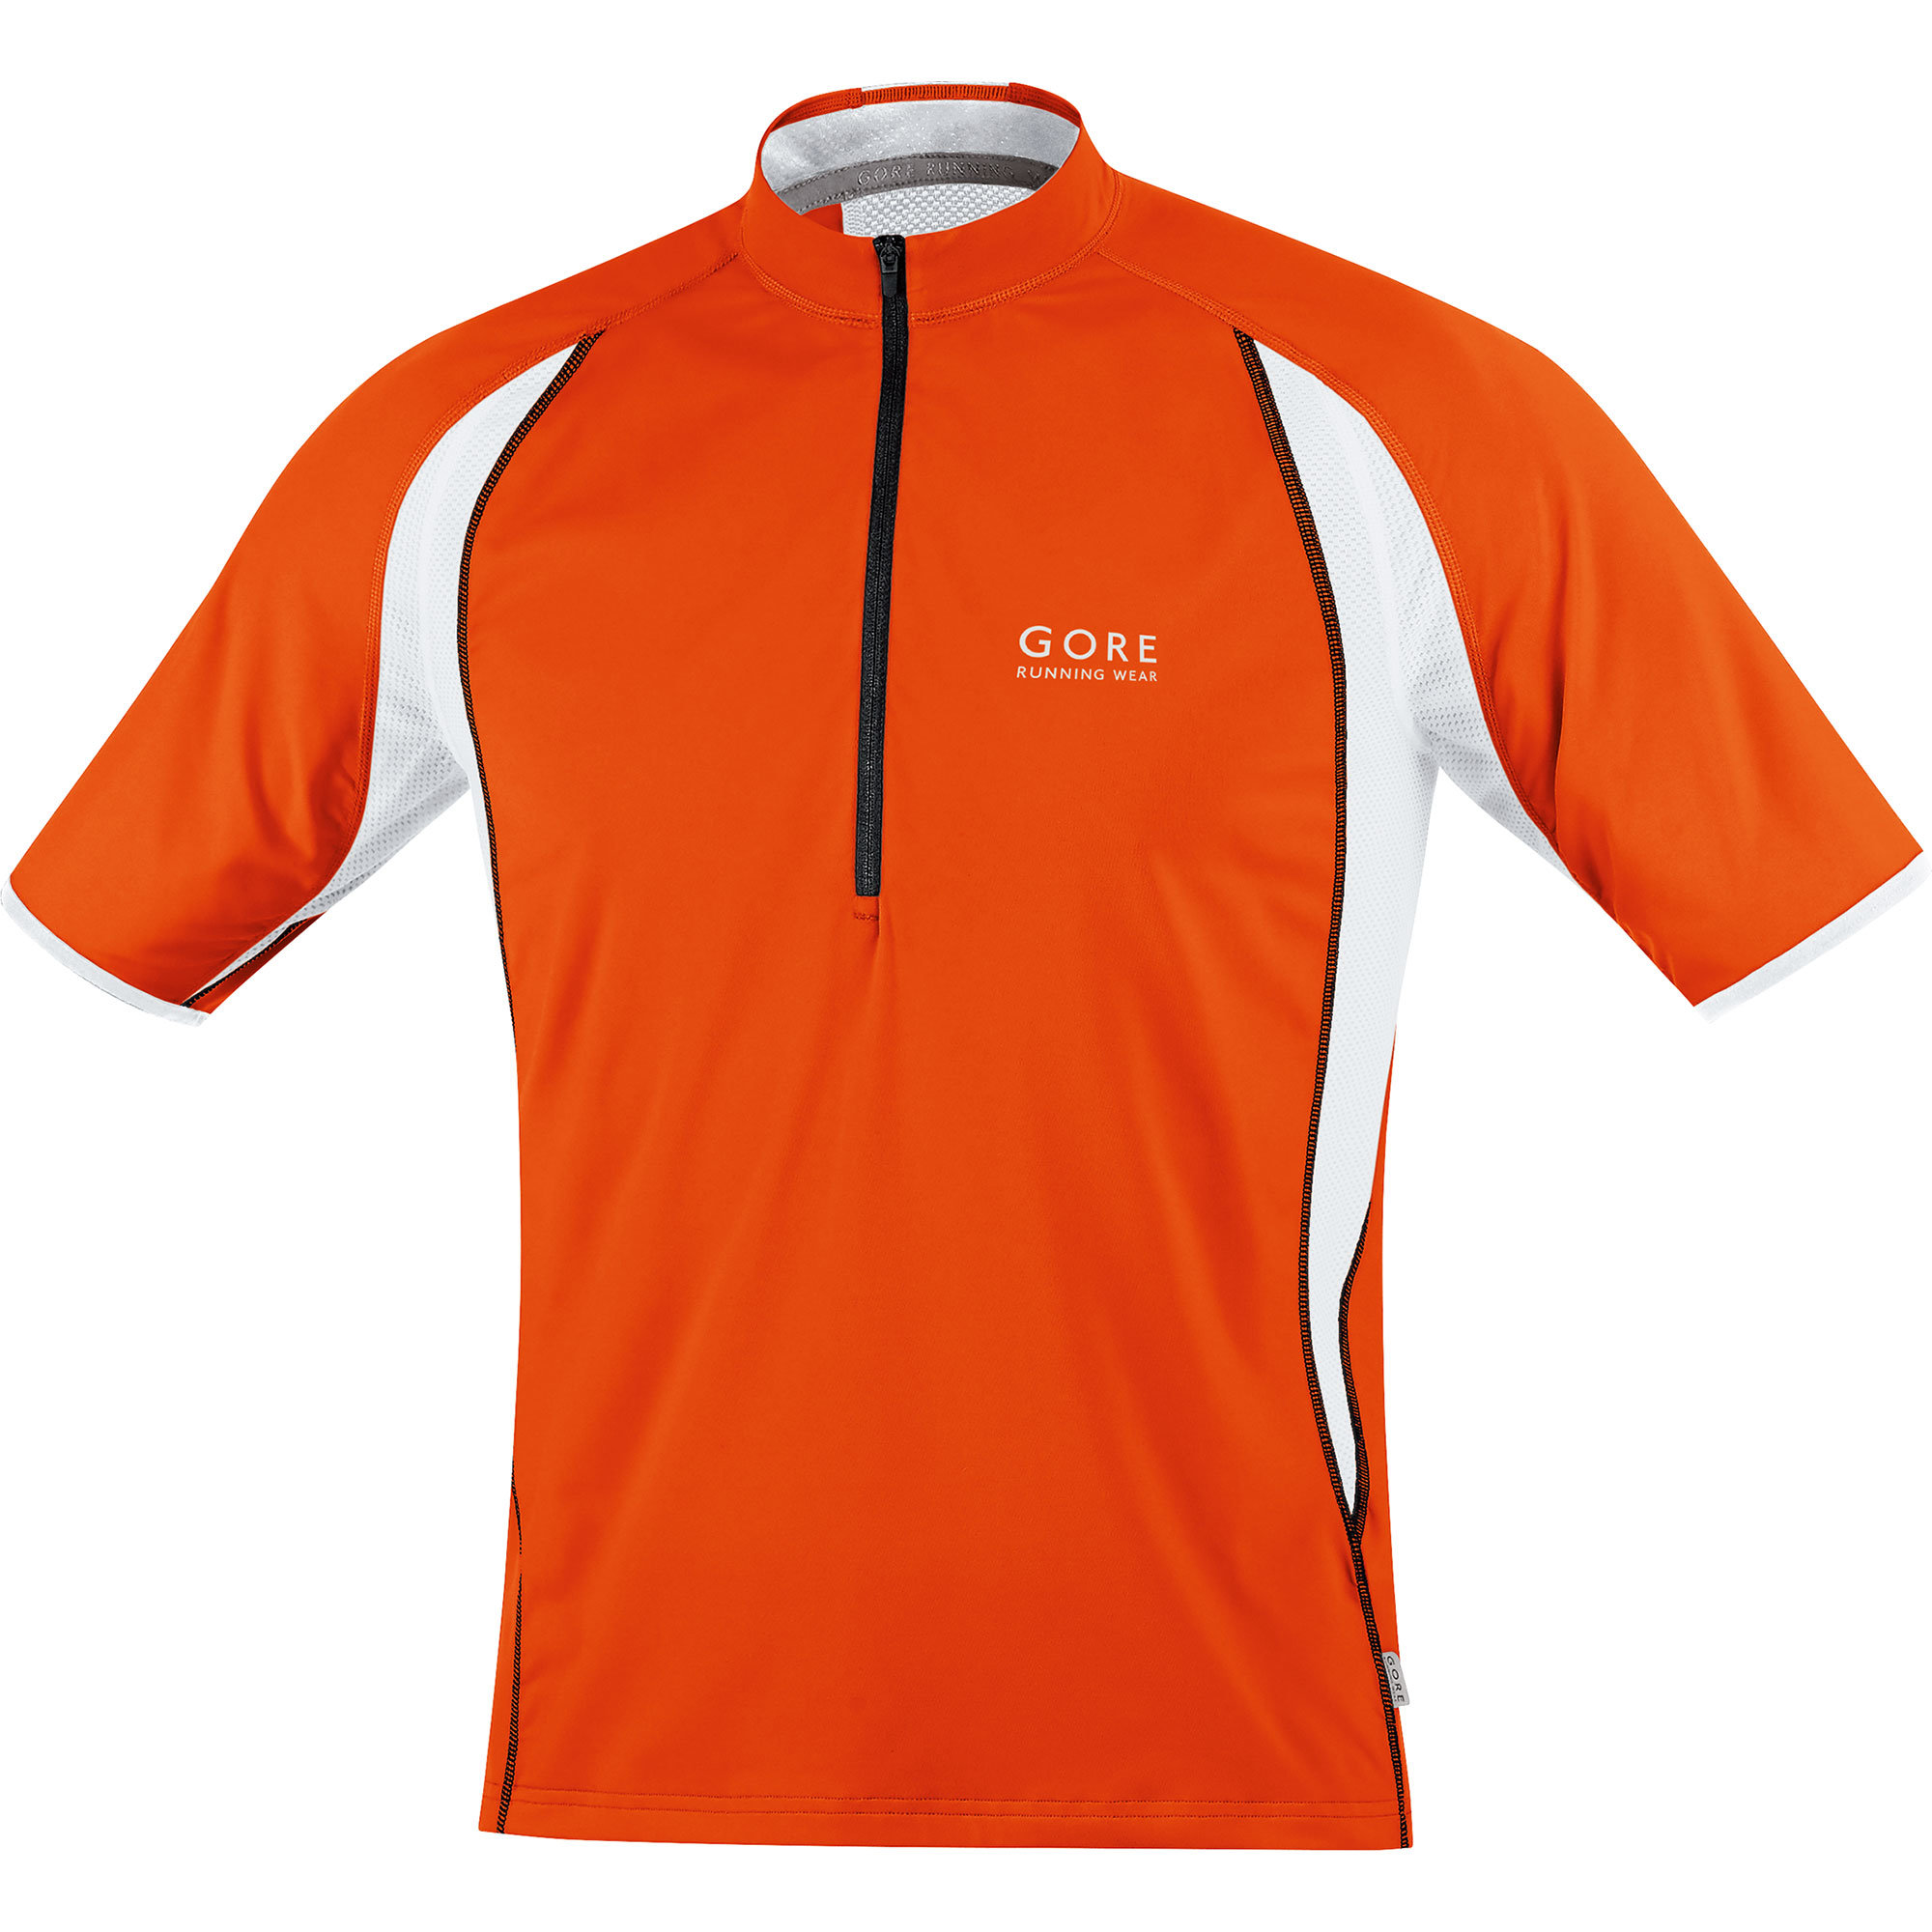 Gore Air Zip Shirt in Orange, Weiß